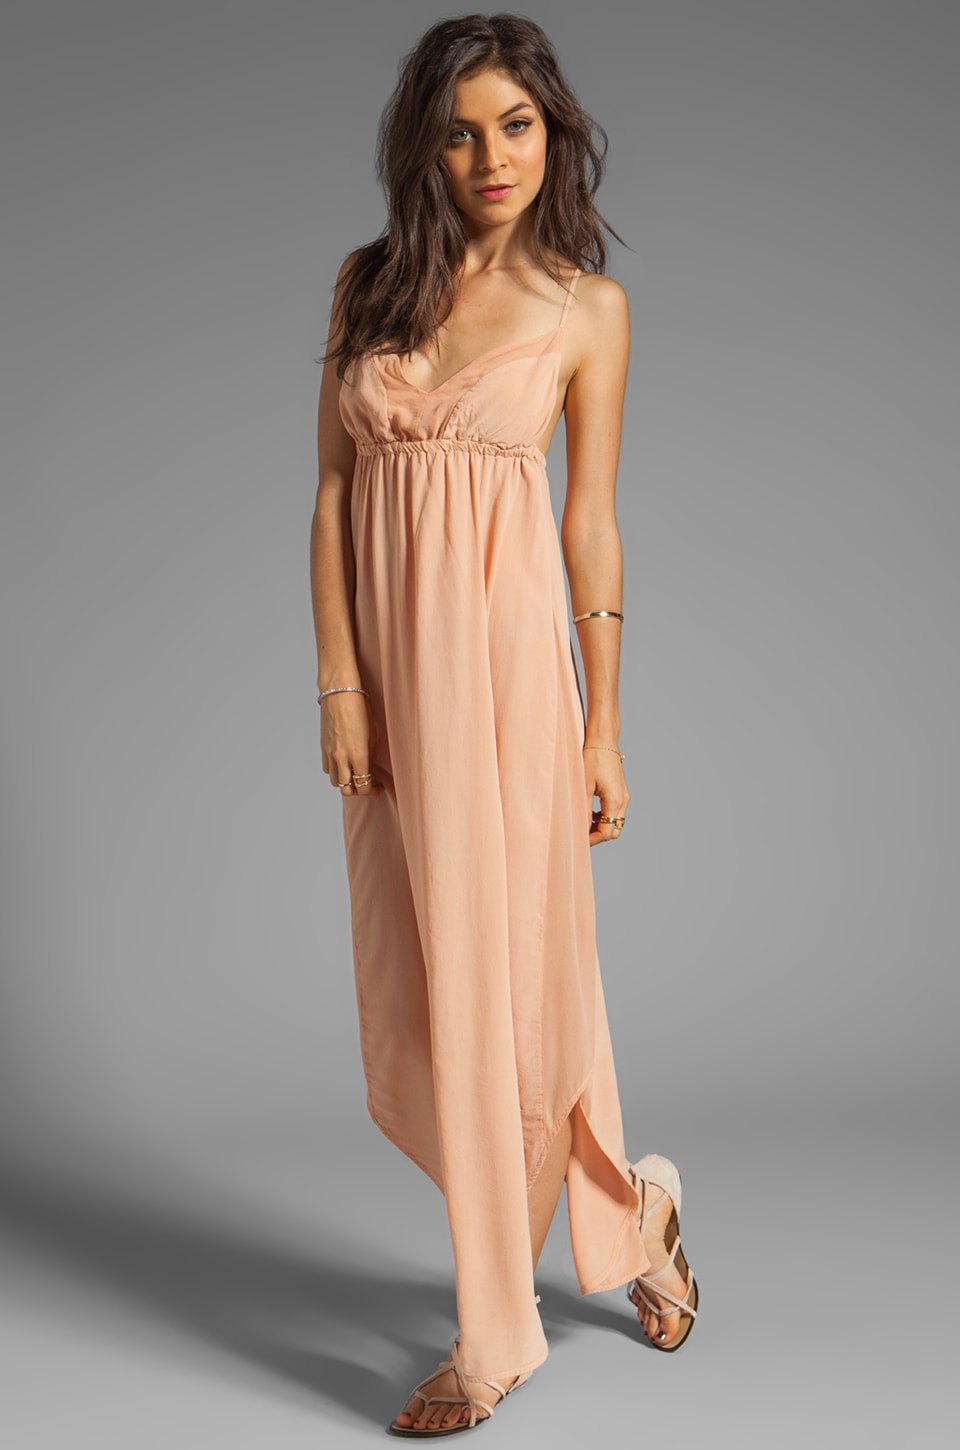 Gypsy 05 Punta Cana Silk V-Bottom Maxi Dress in Dusty Peach